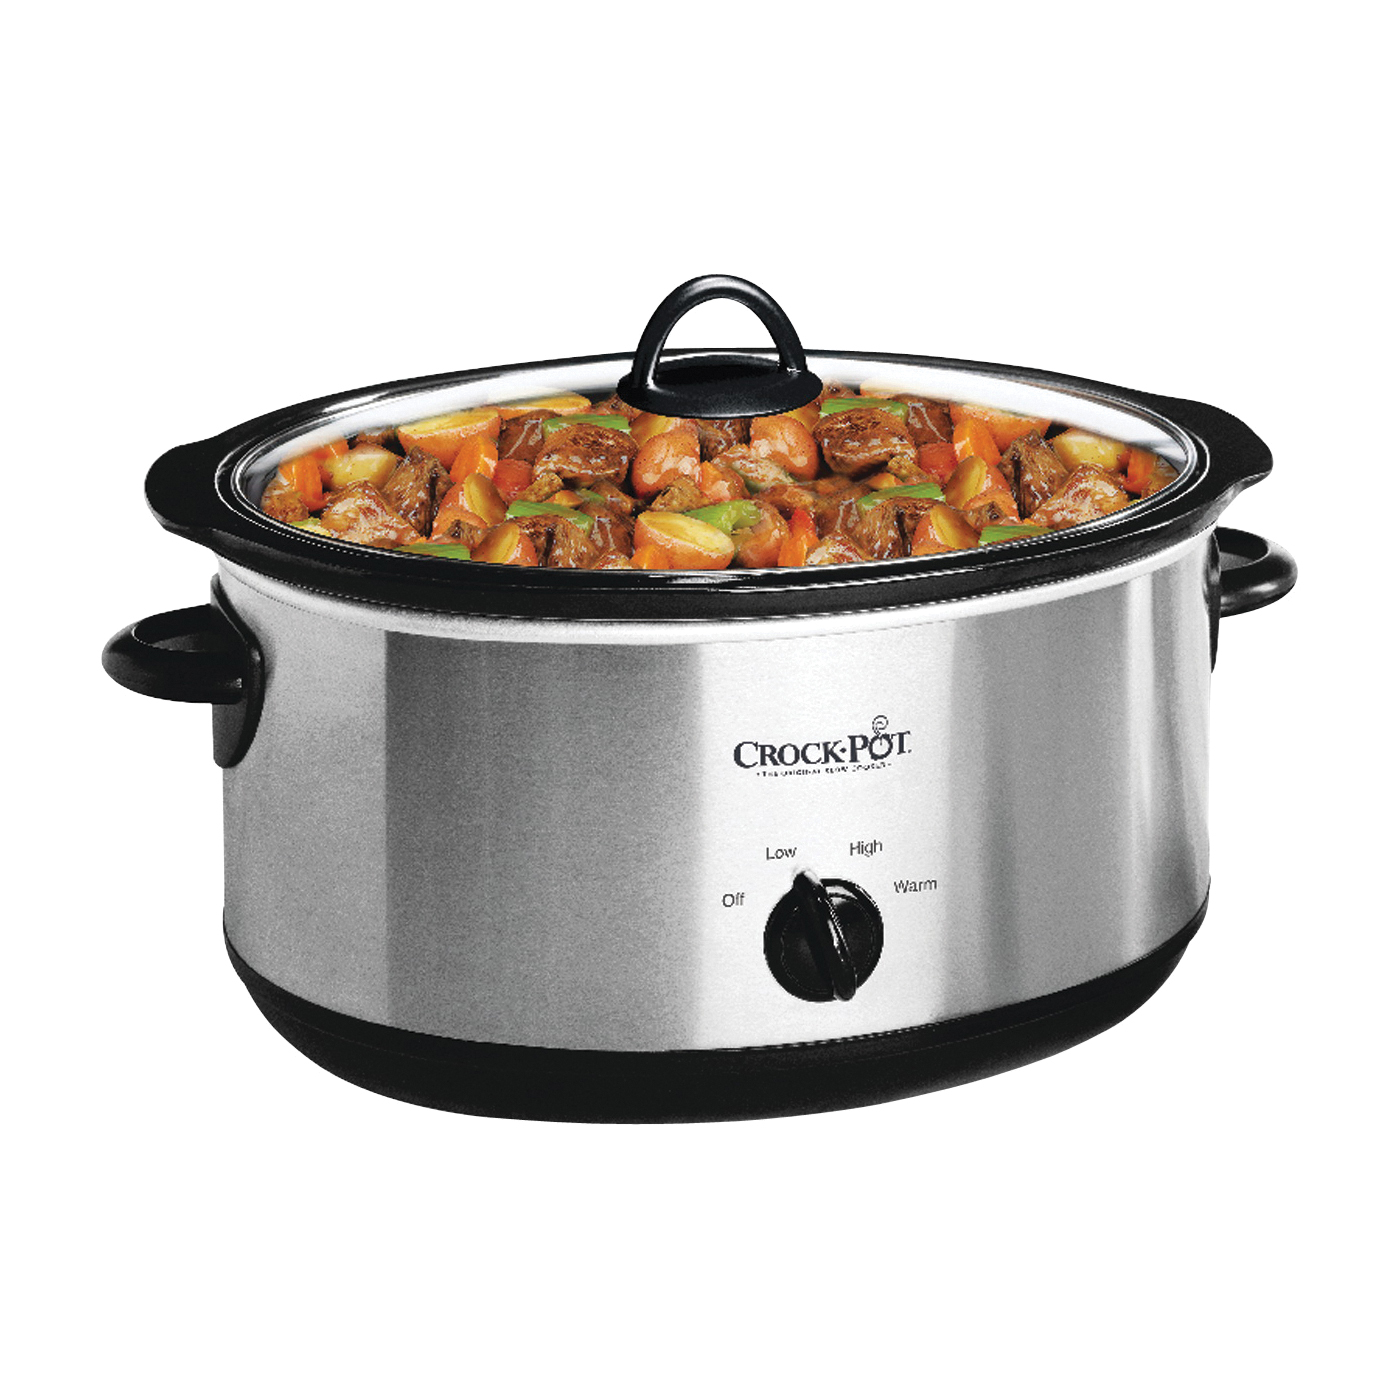 Picture of Crock-Pot SCV700-SS Slow Cooker, 7 qt Capacity, 270 W, Manual Control, Stainless Steel, Silver